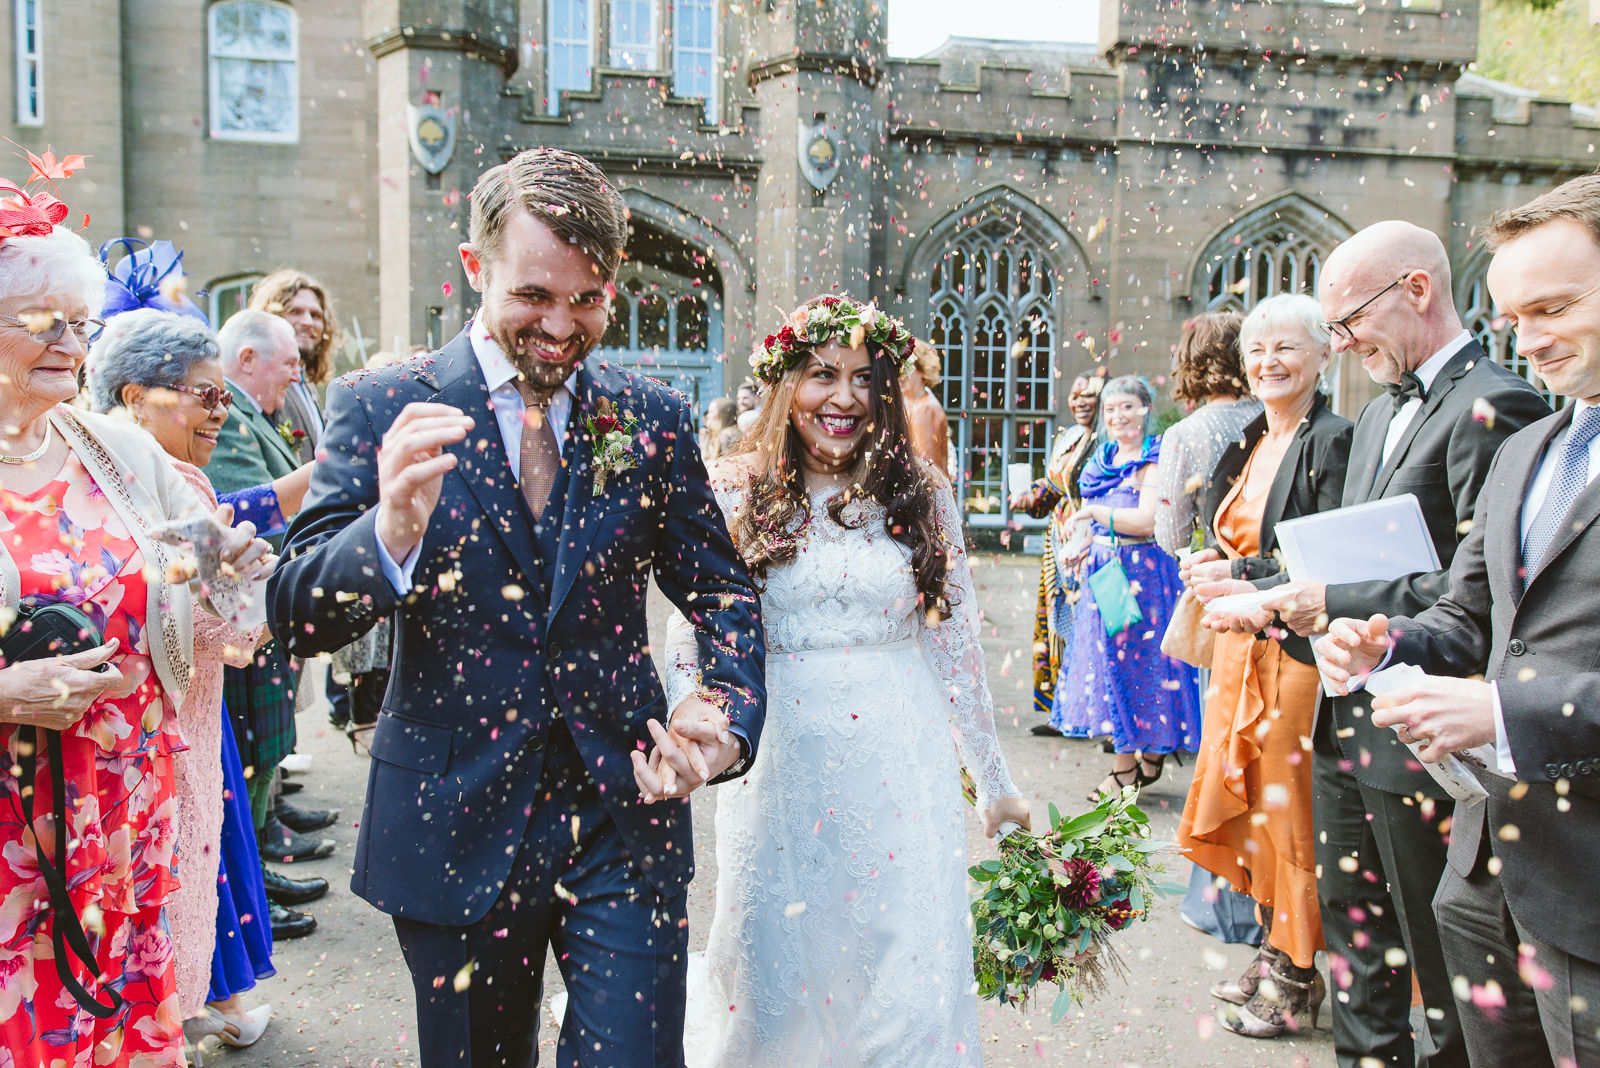 What Confetti Works Best in Photos?